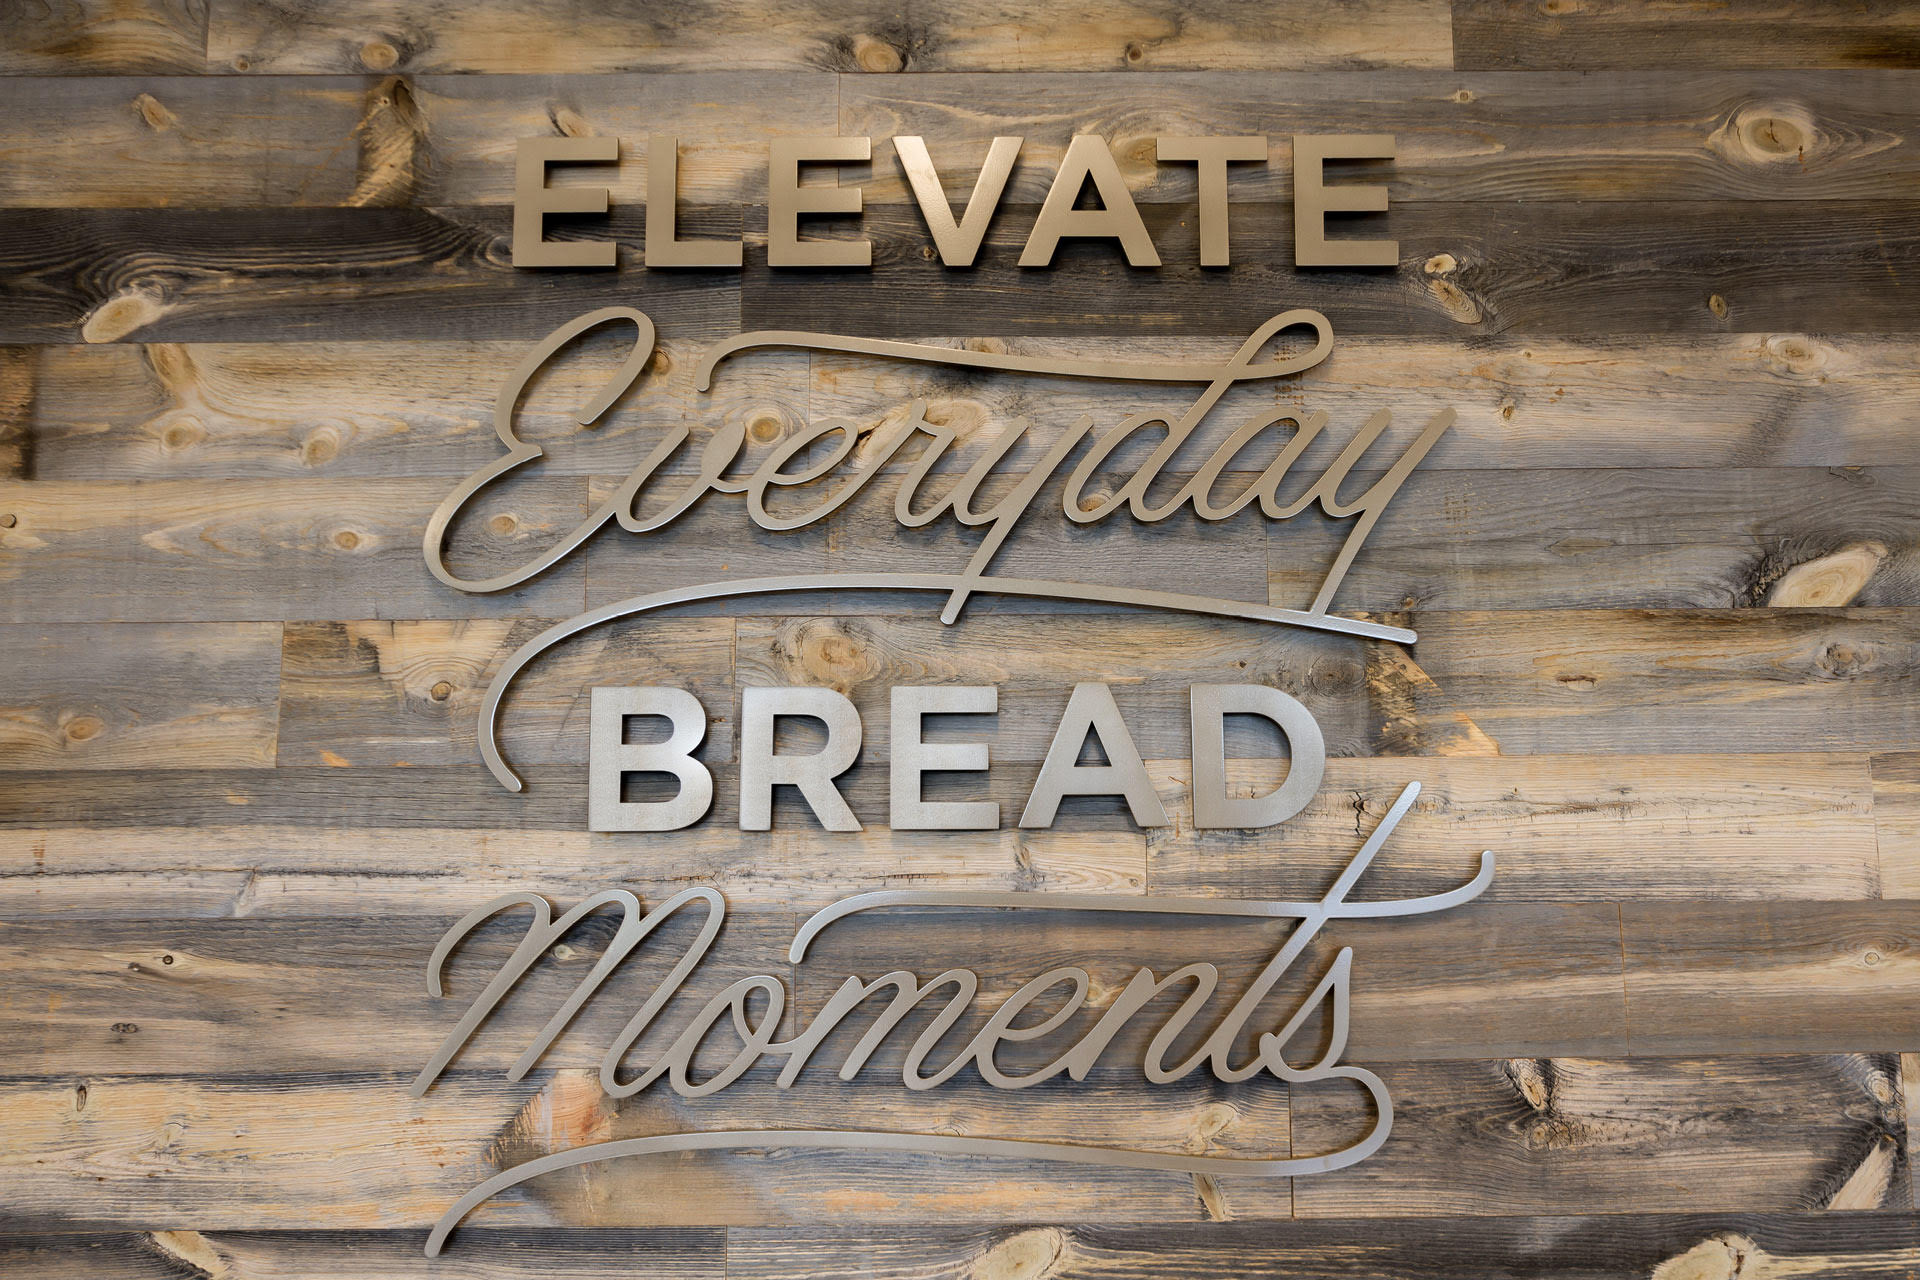 elevate everyday bread moments sign